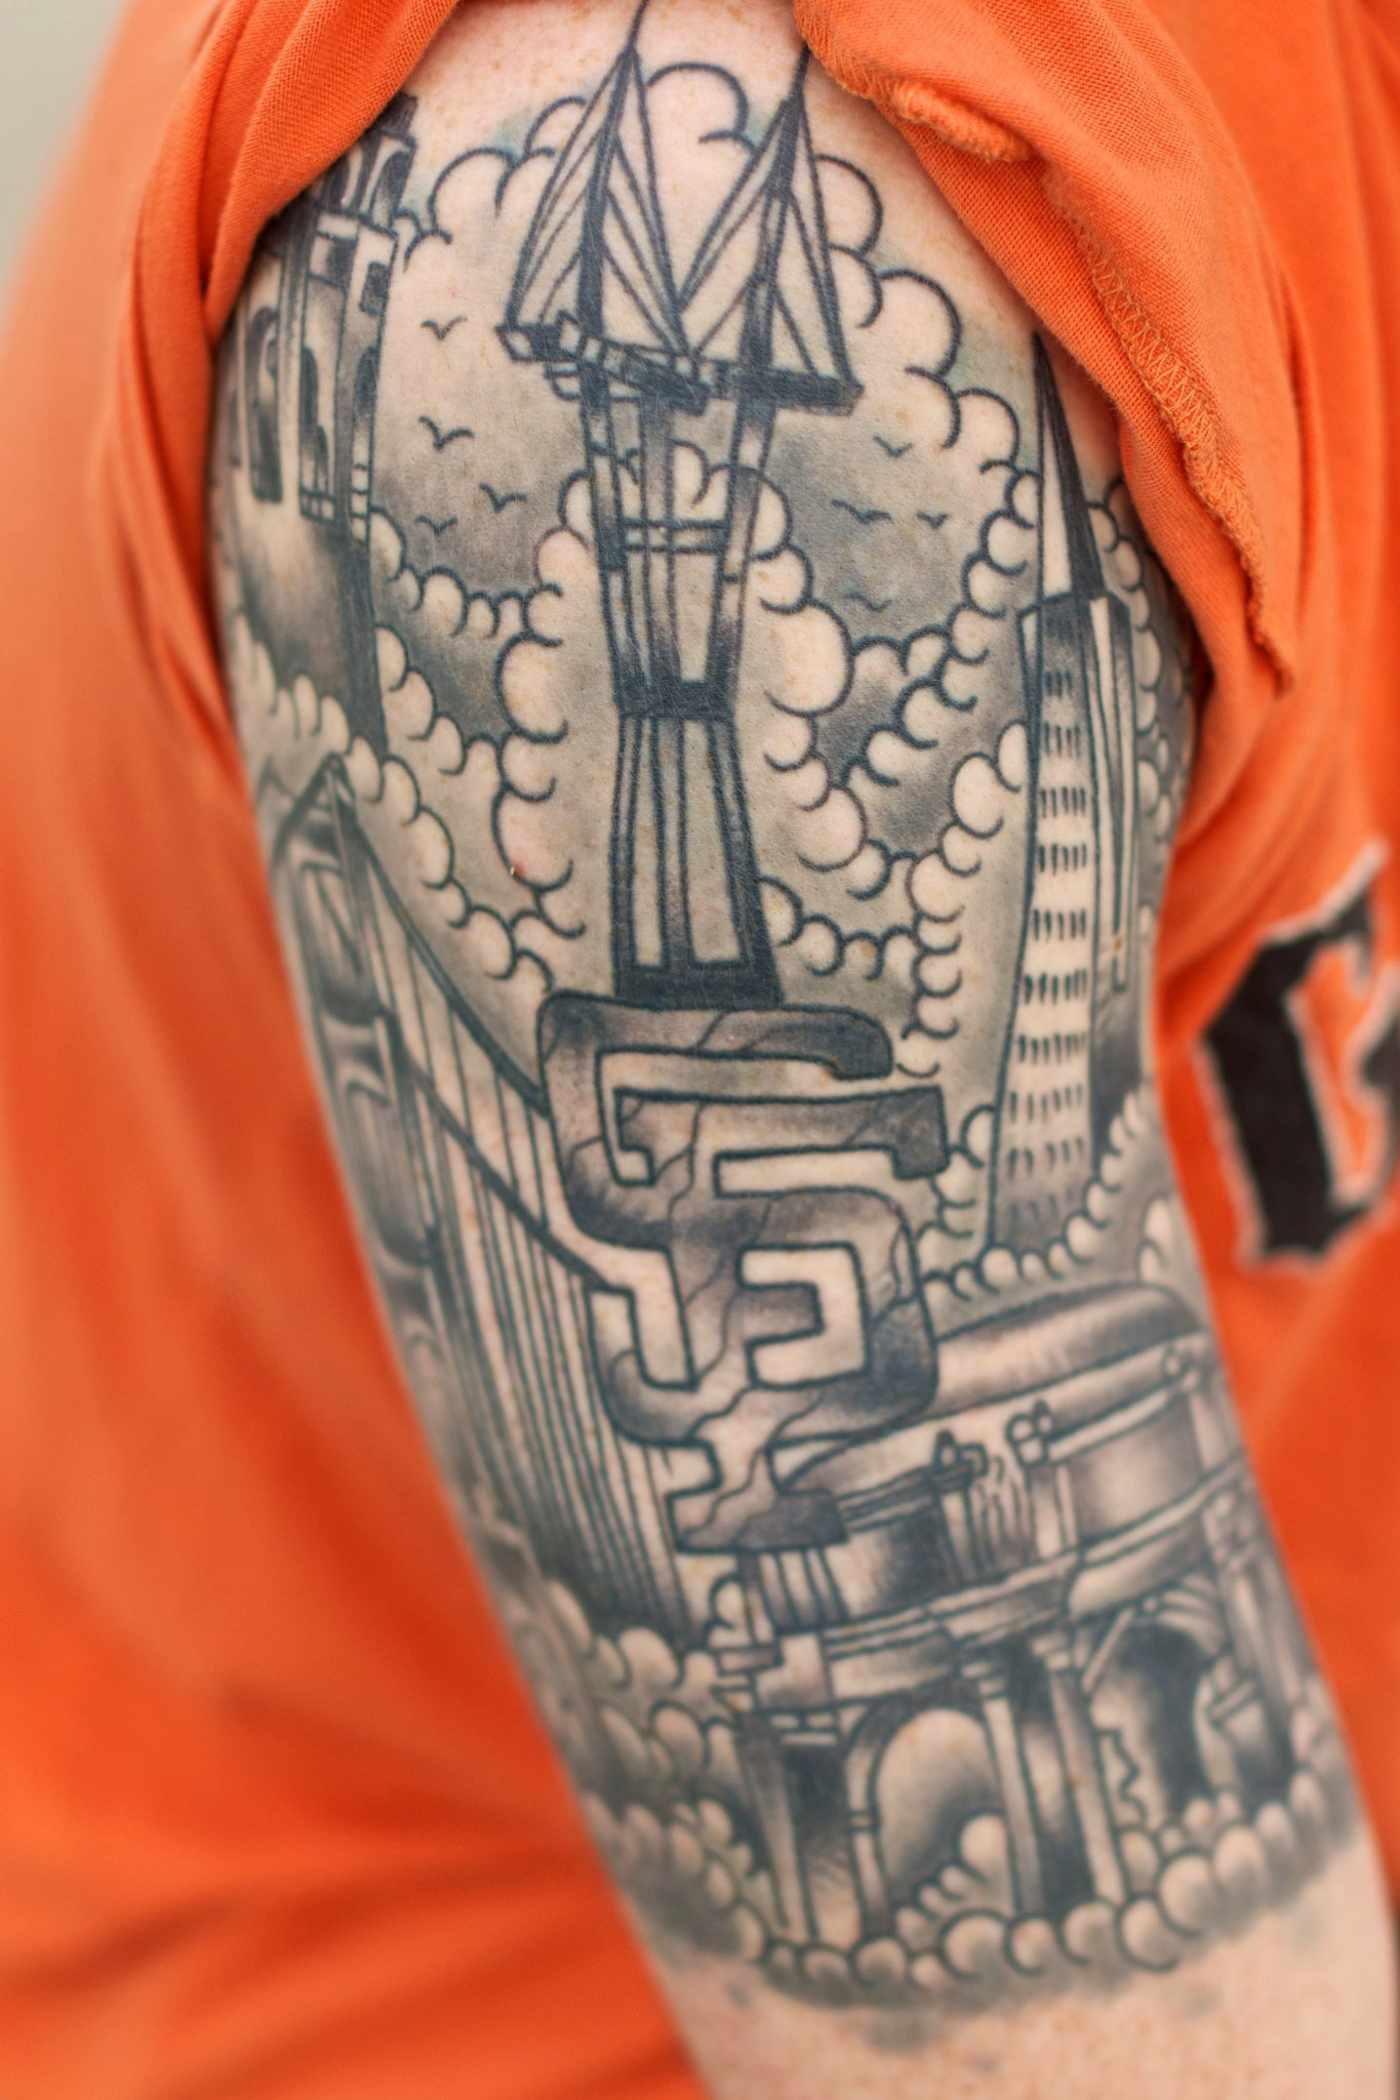 this guy has won the san francisco landmark tattoo game